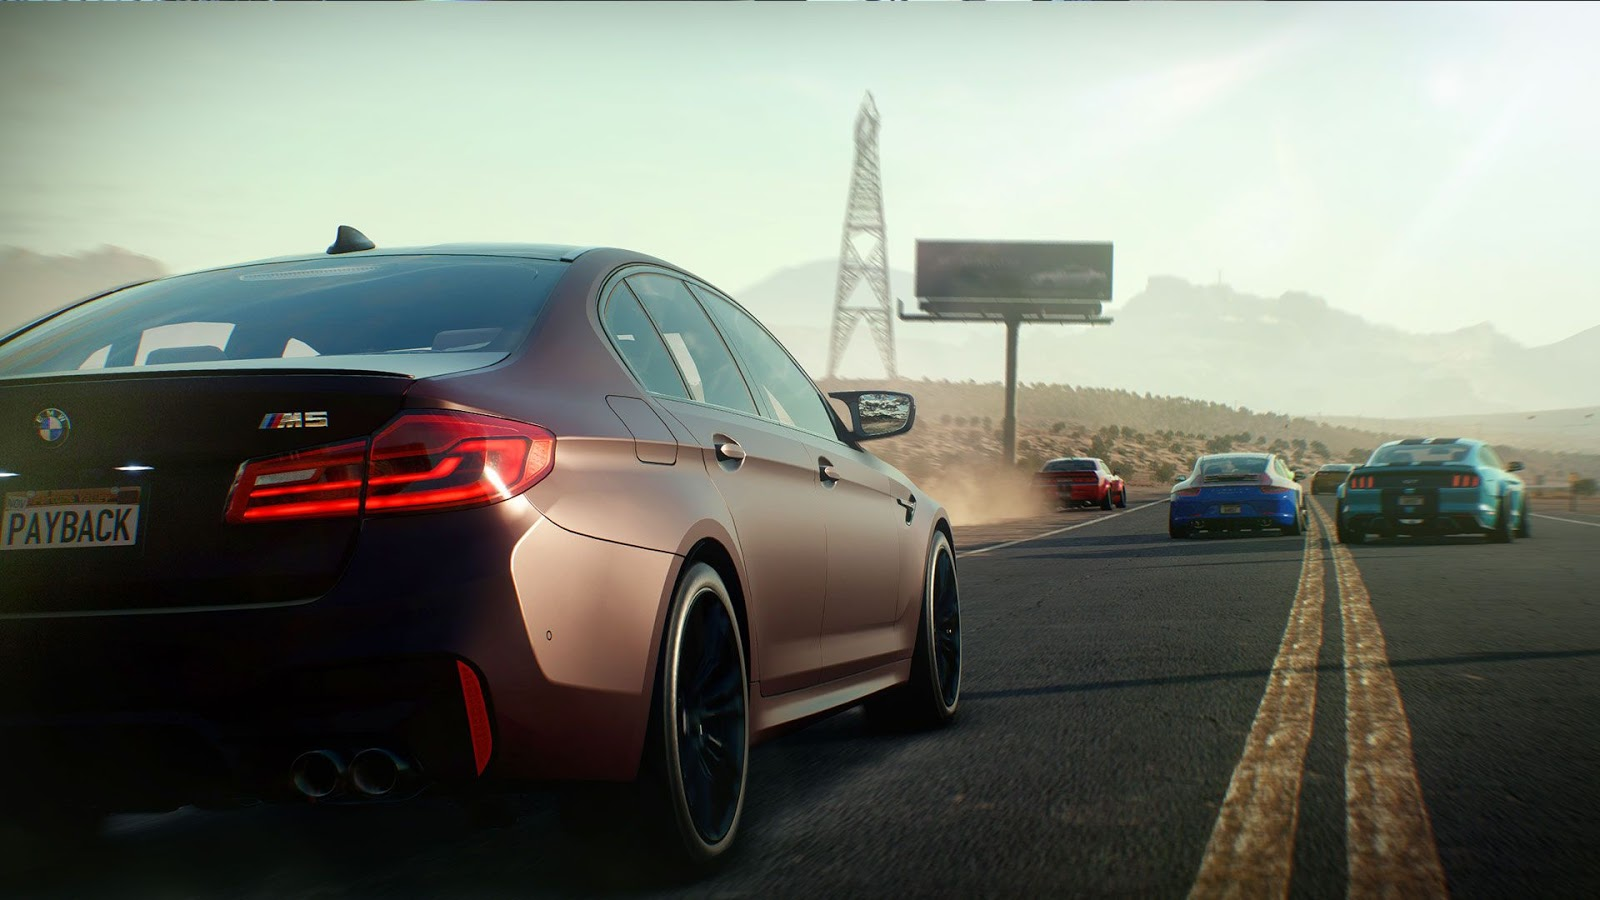 Need For Speed Payback PC Full ESPAÑOL (CPY) + REPACK 5 DVD5 + 1 ISO (JPW) 8